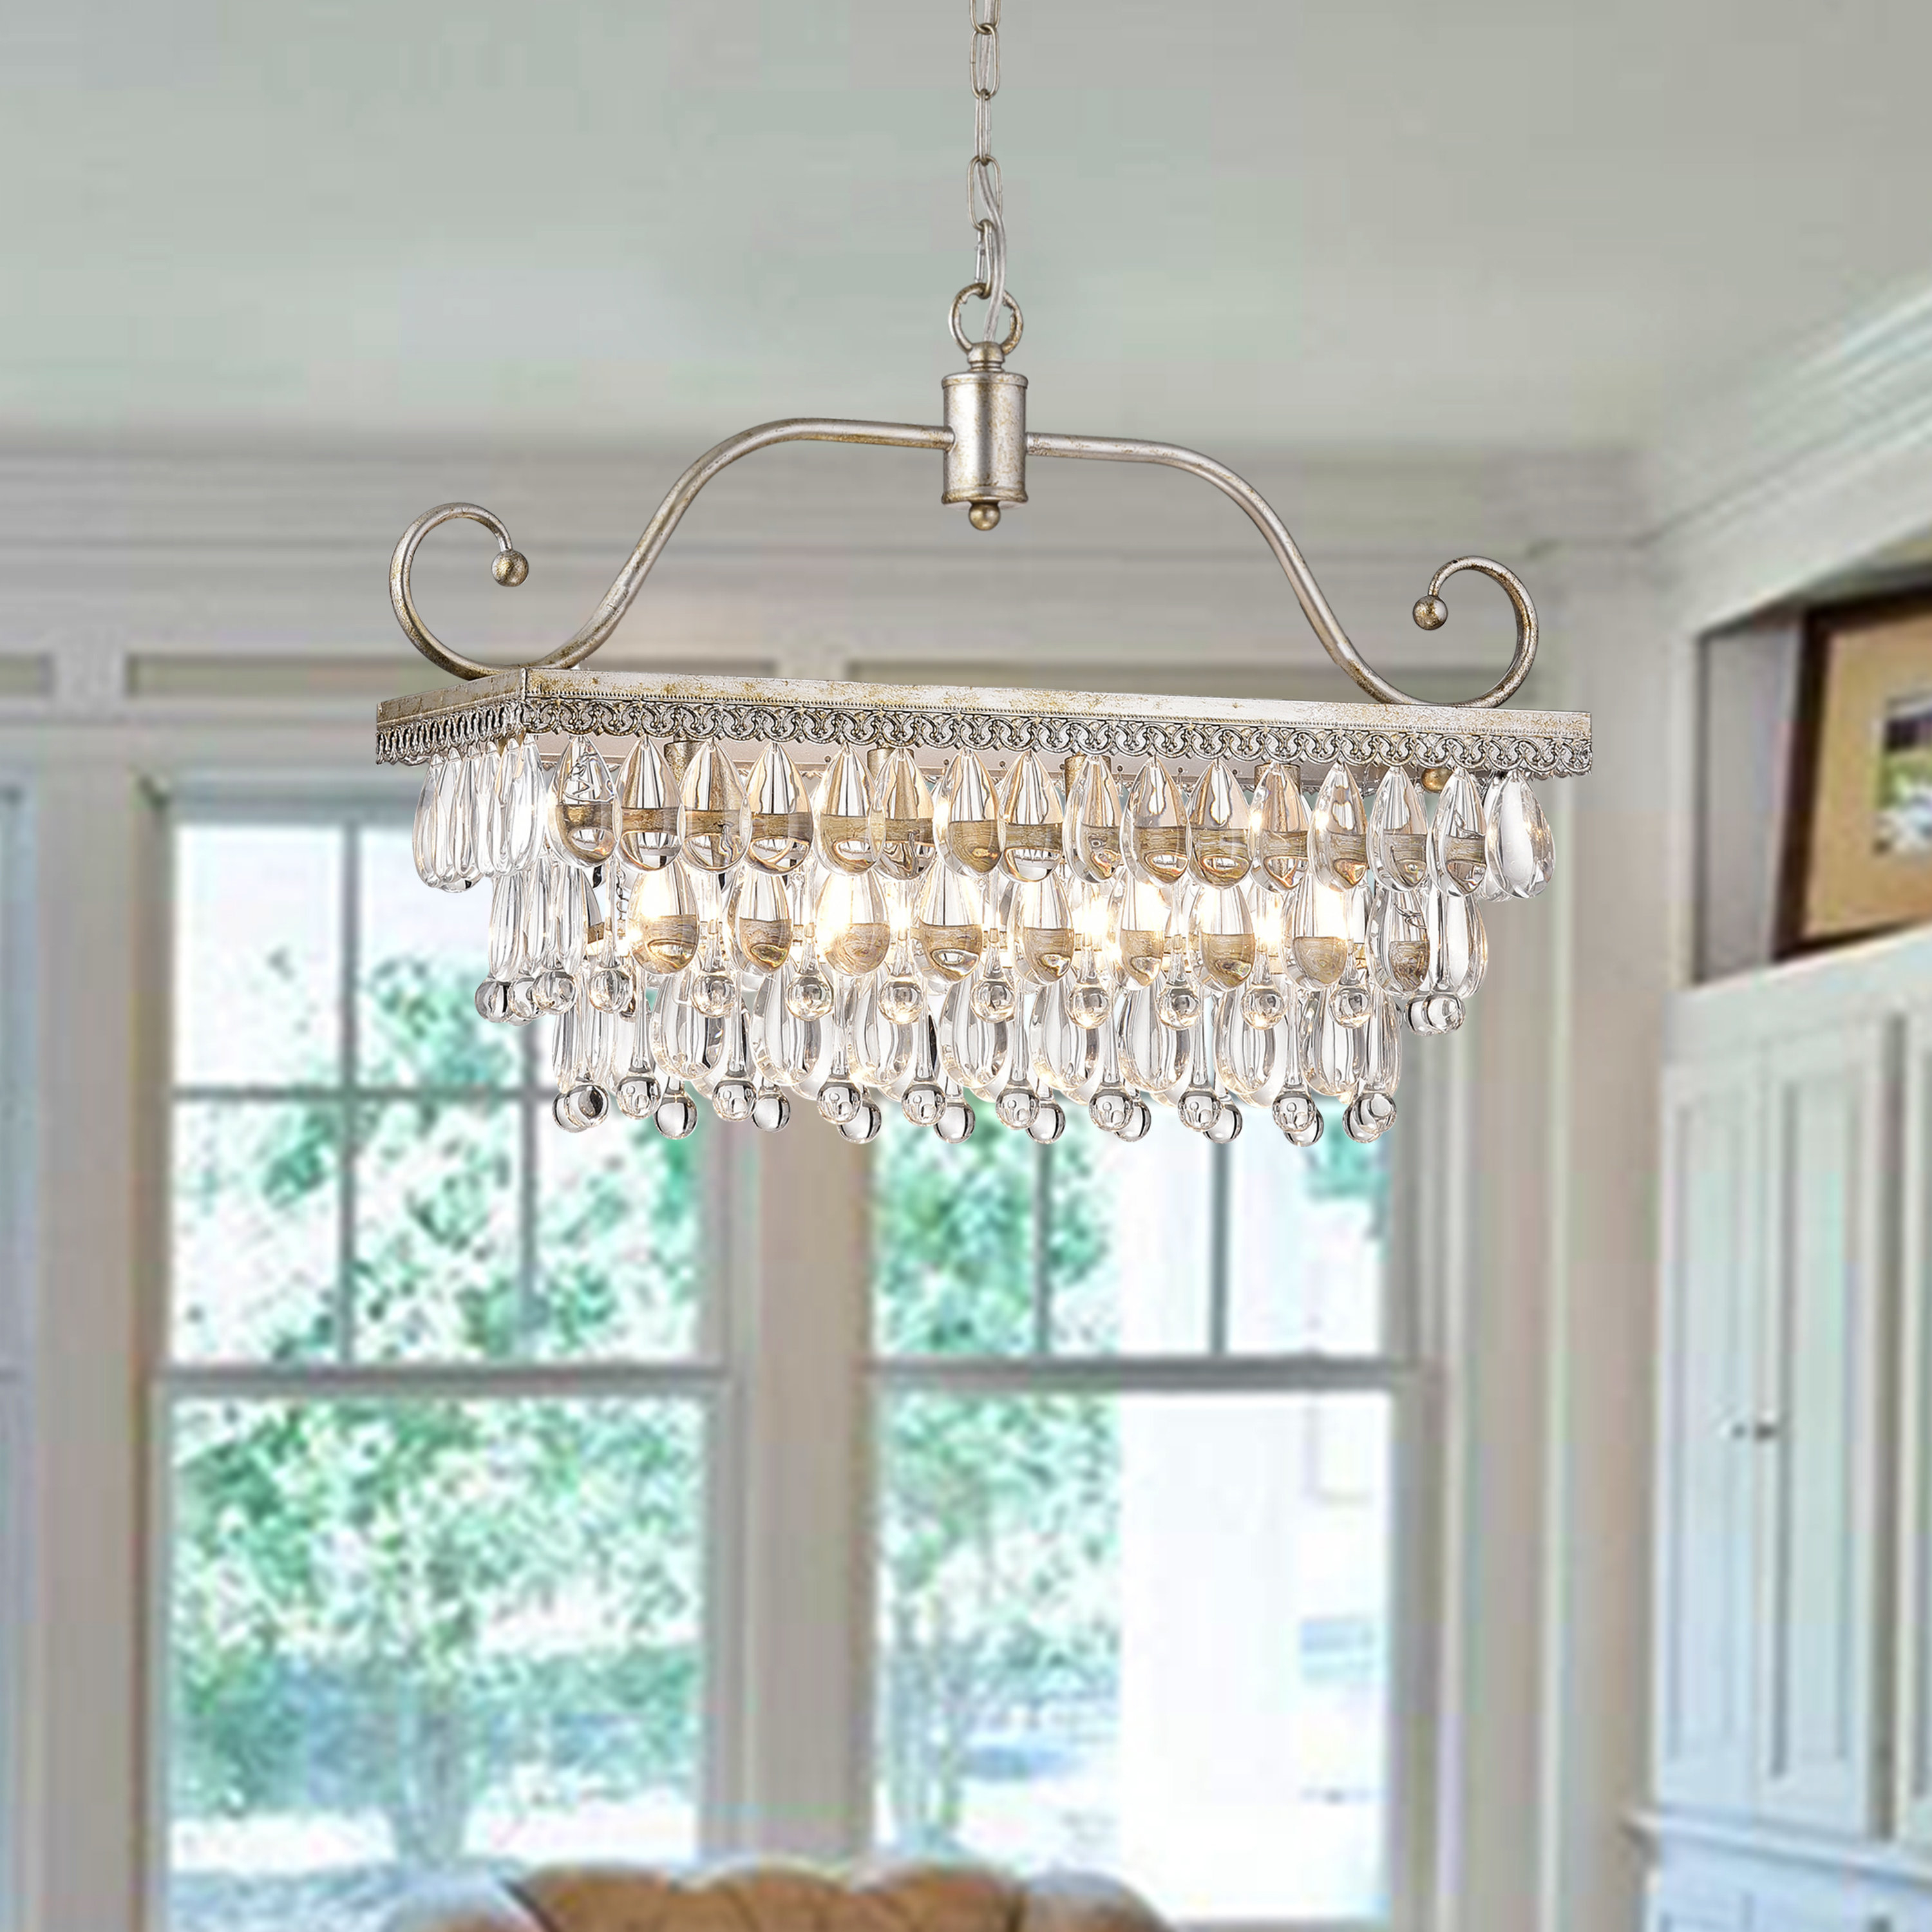 Fashionable Gerhart 4 Light Crystal Chandelier Throughout Dailey 4 Light Drum Chandeliers (View 15 of 20)